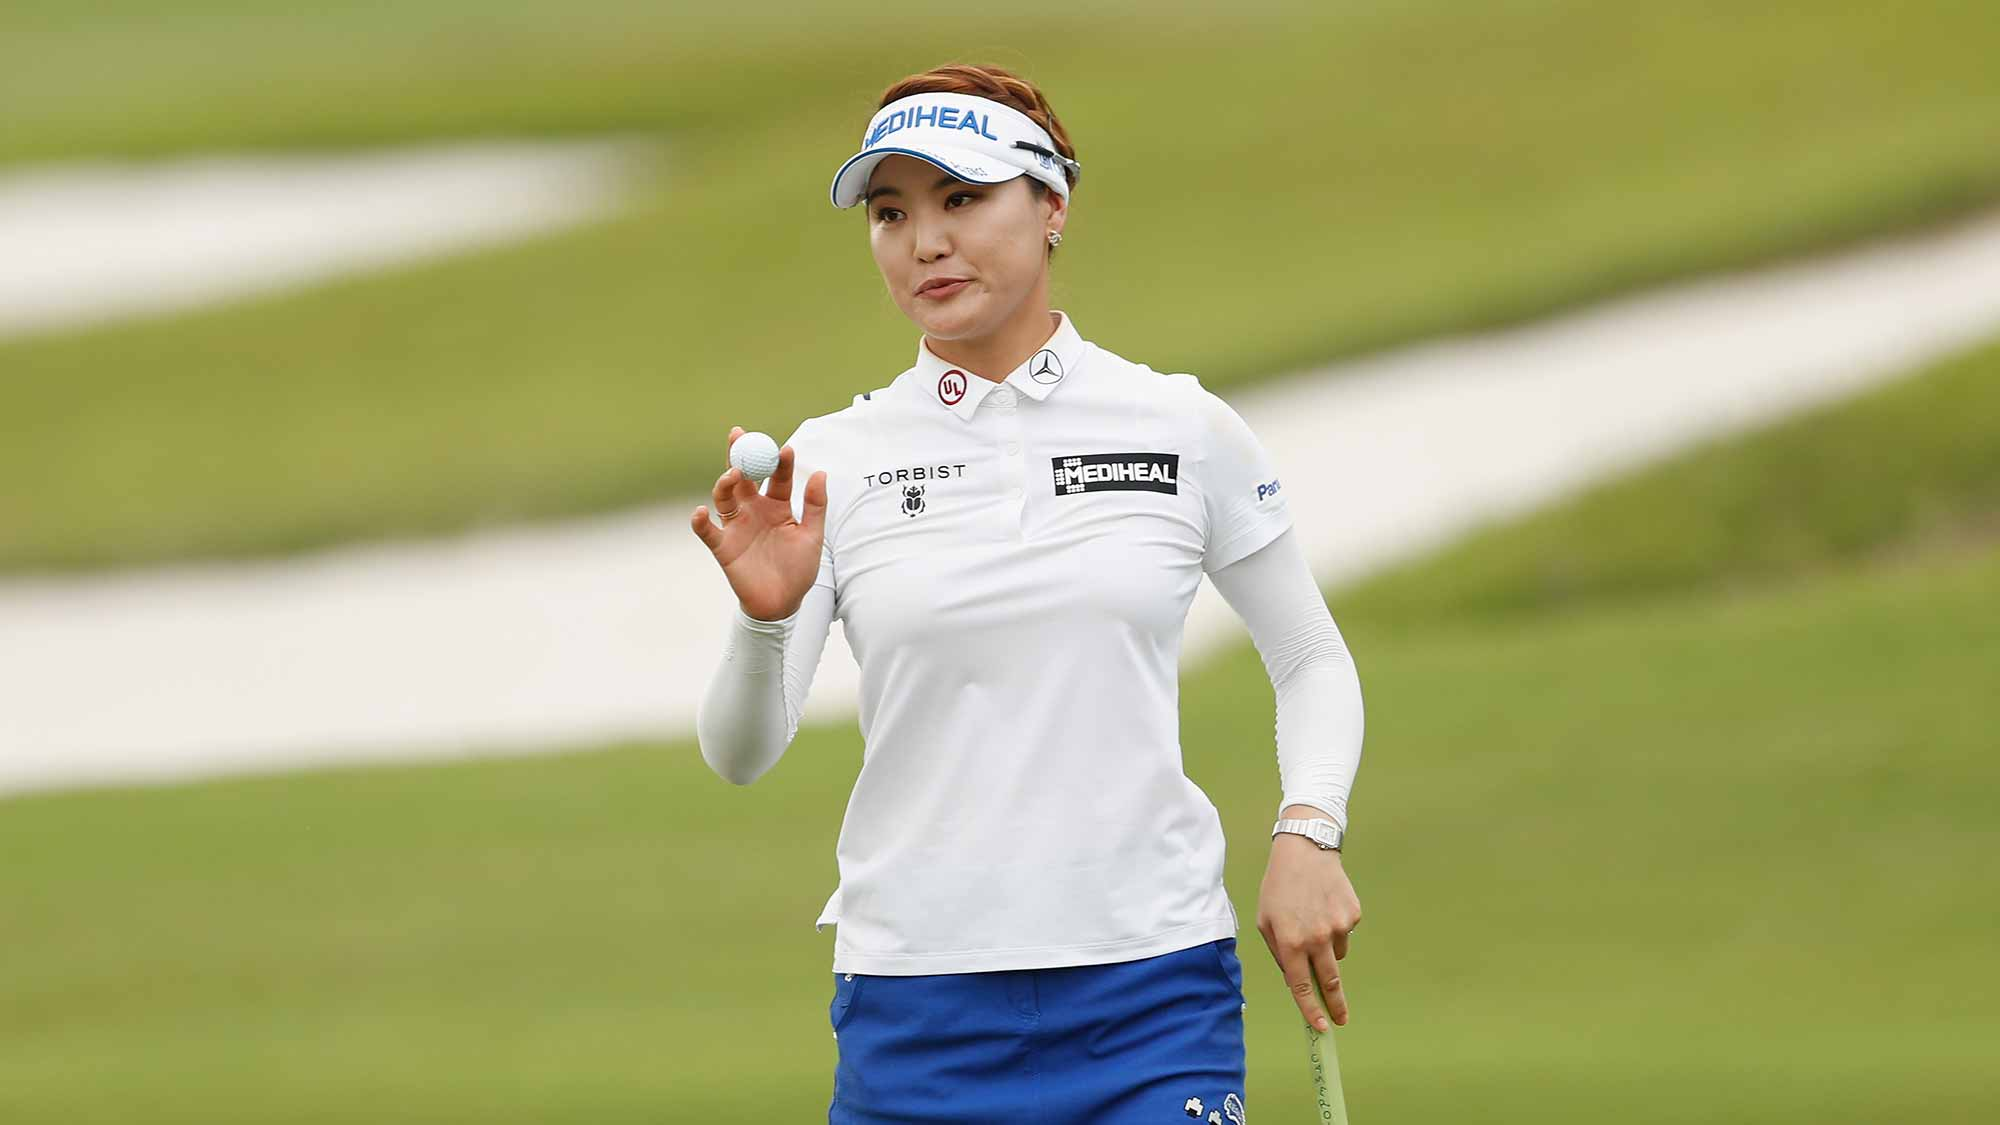 So Yeon Ryu of Korea acknowledges spectators at the fifteen hole during the first round of the Swinging Skirts LPGA Taiwan Championship at Ta Shee Golf & Country Club on October 25, 2018 in Taoyuan, Chinese Taipei